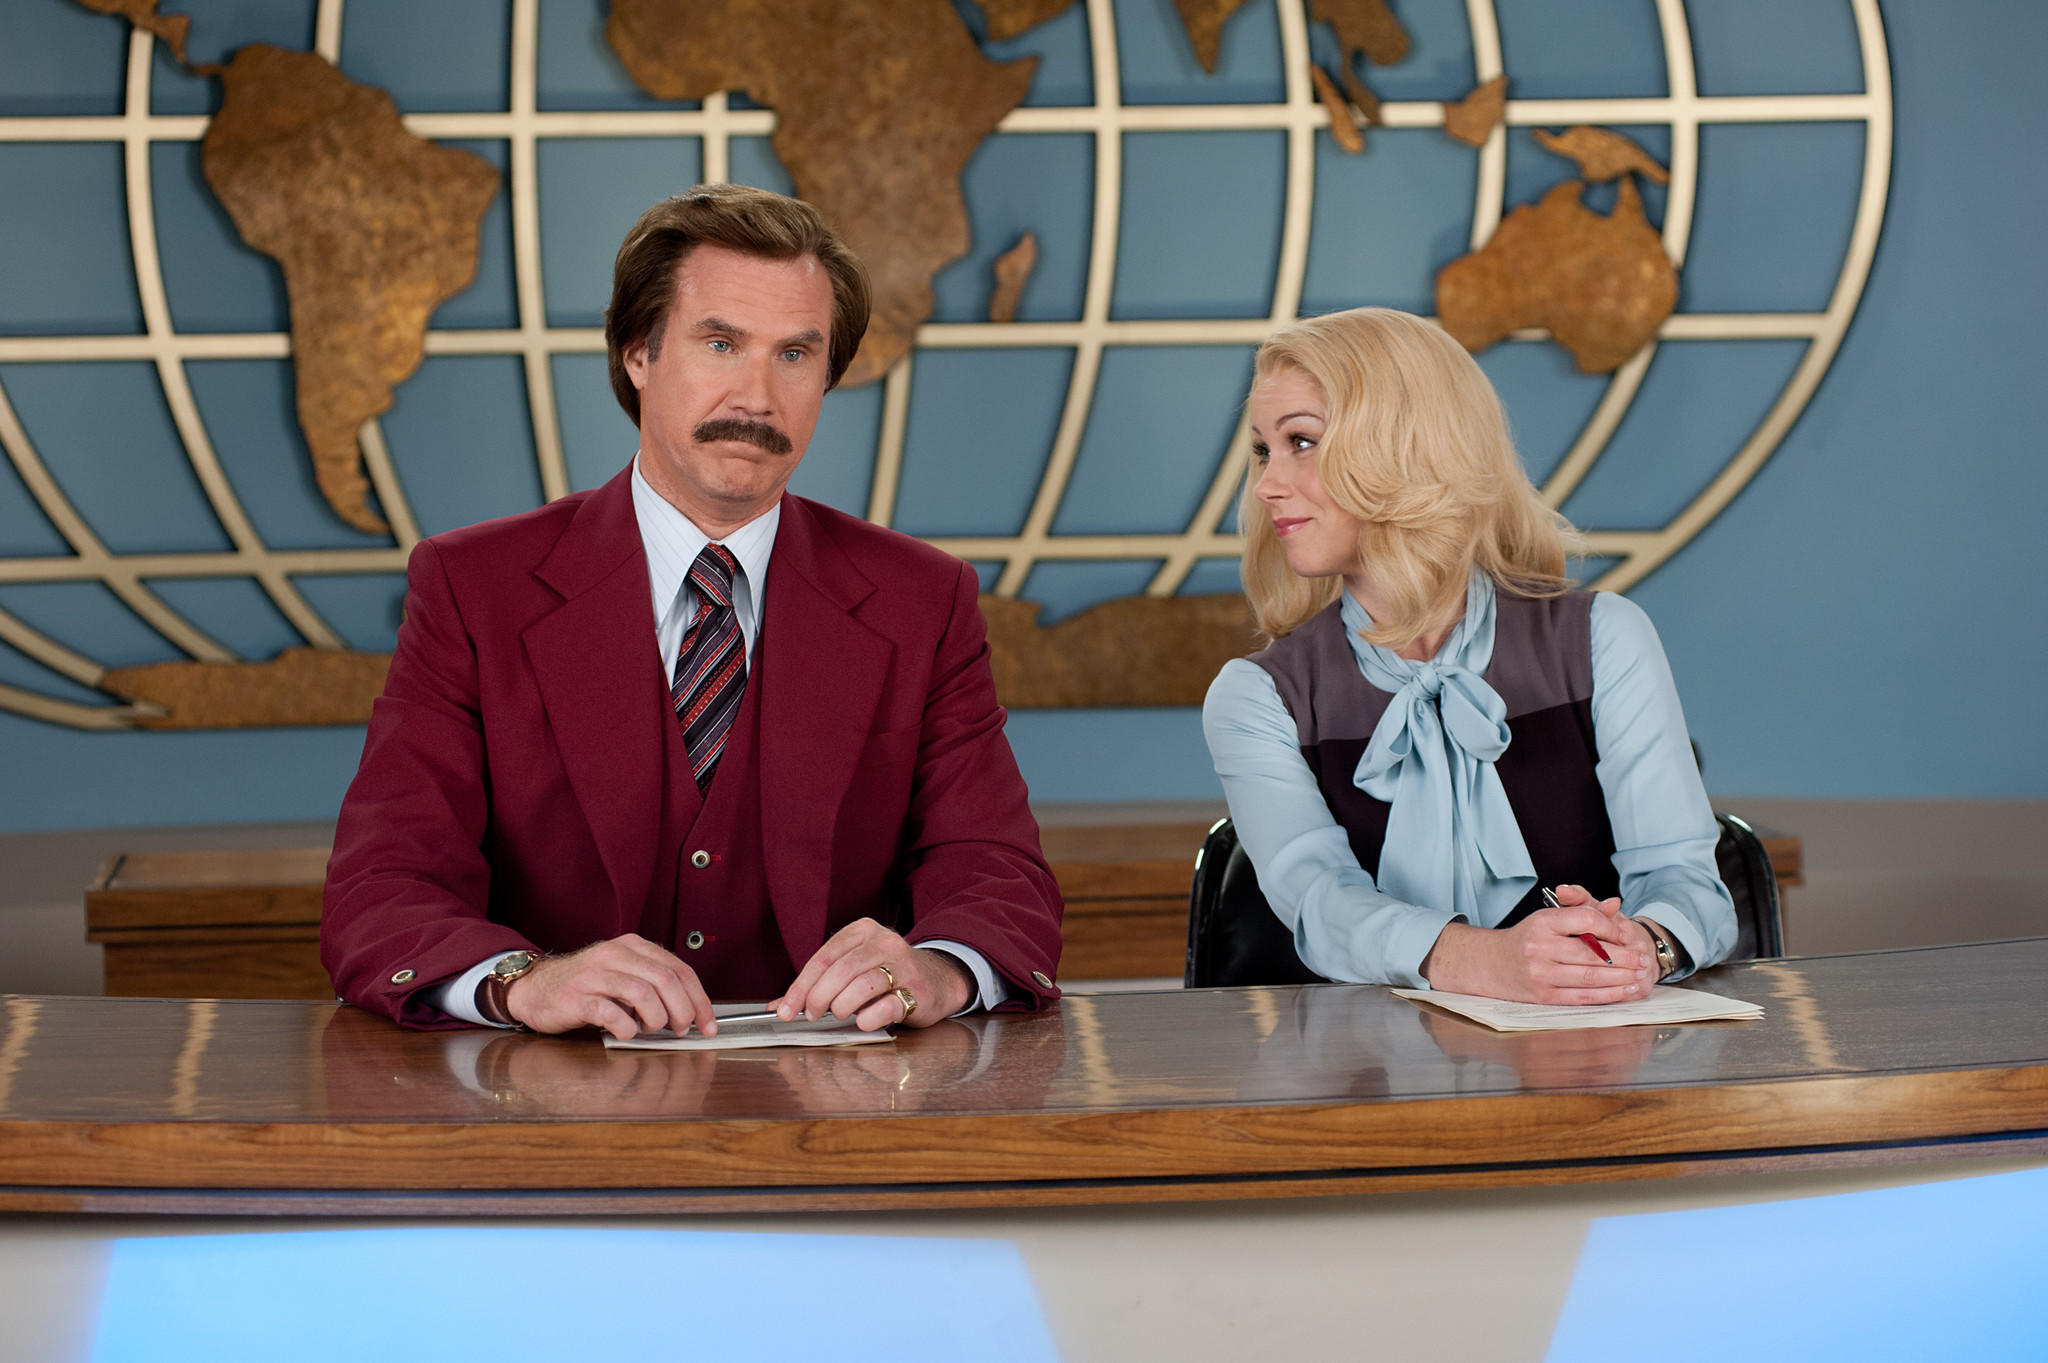 """Anchorman 2: The Legend Continues"" had a disappointing weekend at the box office. Above, Will Ferrell as Ron Burgundy and Christina Applegate as Veronica Corningstone in a scene from the comedy."